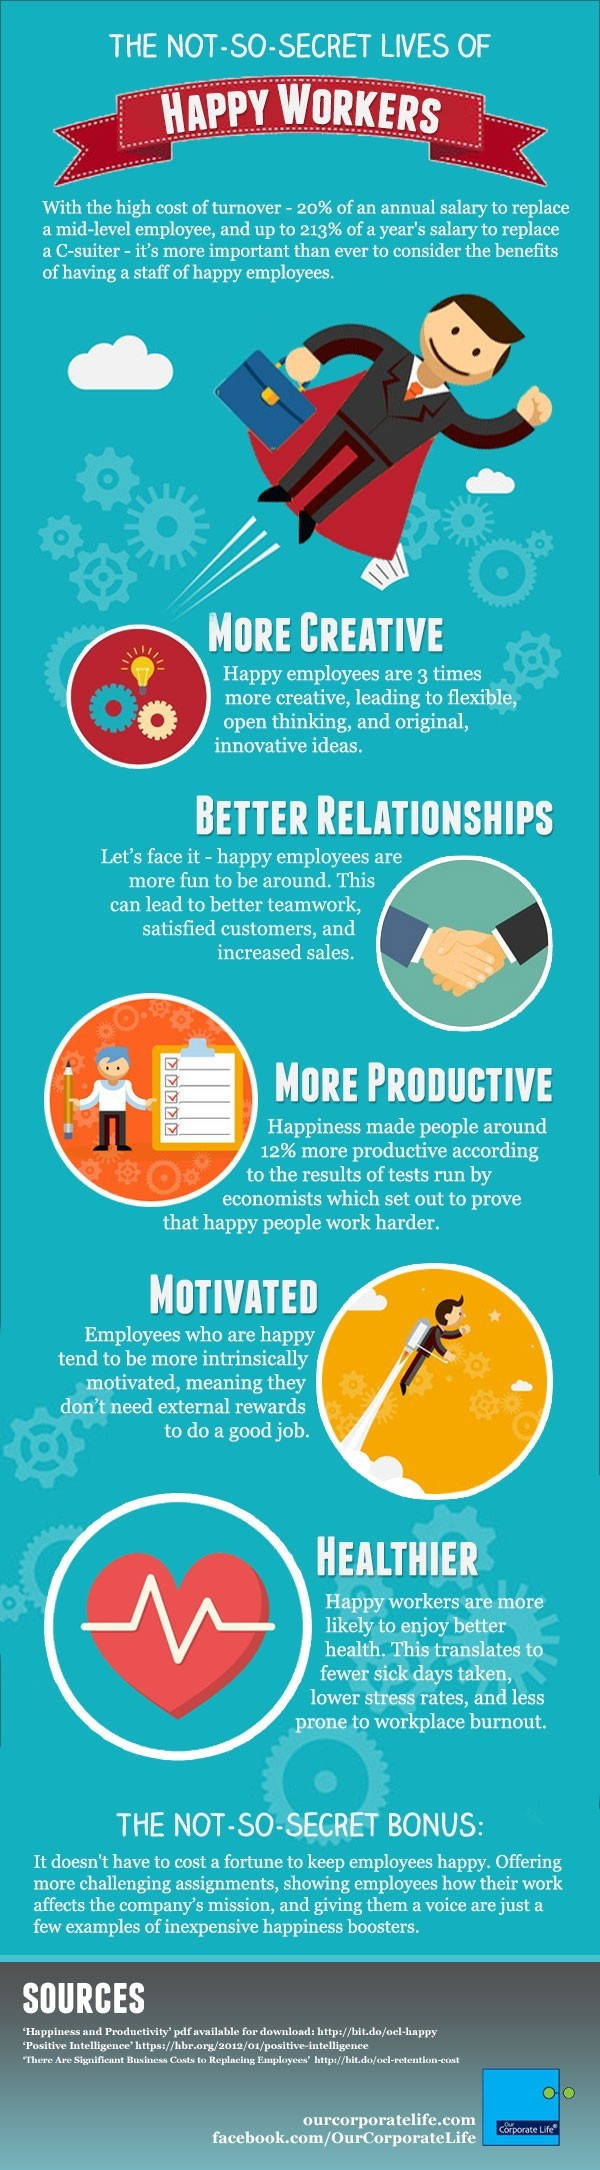 Infographic Our Corporate Life Not-So-Secret Lives of Happy Workers